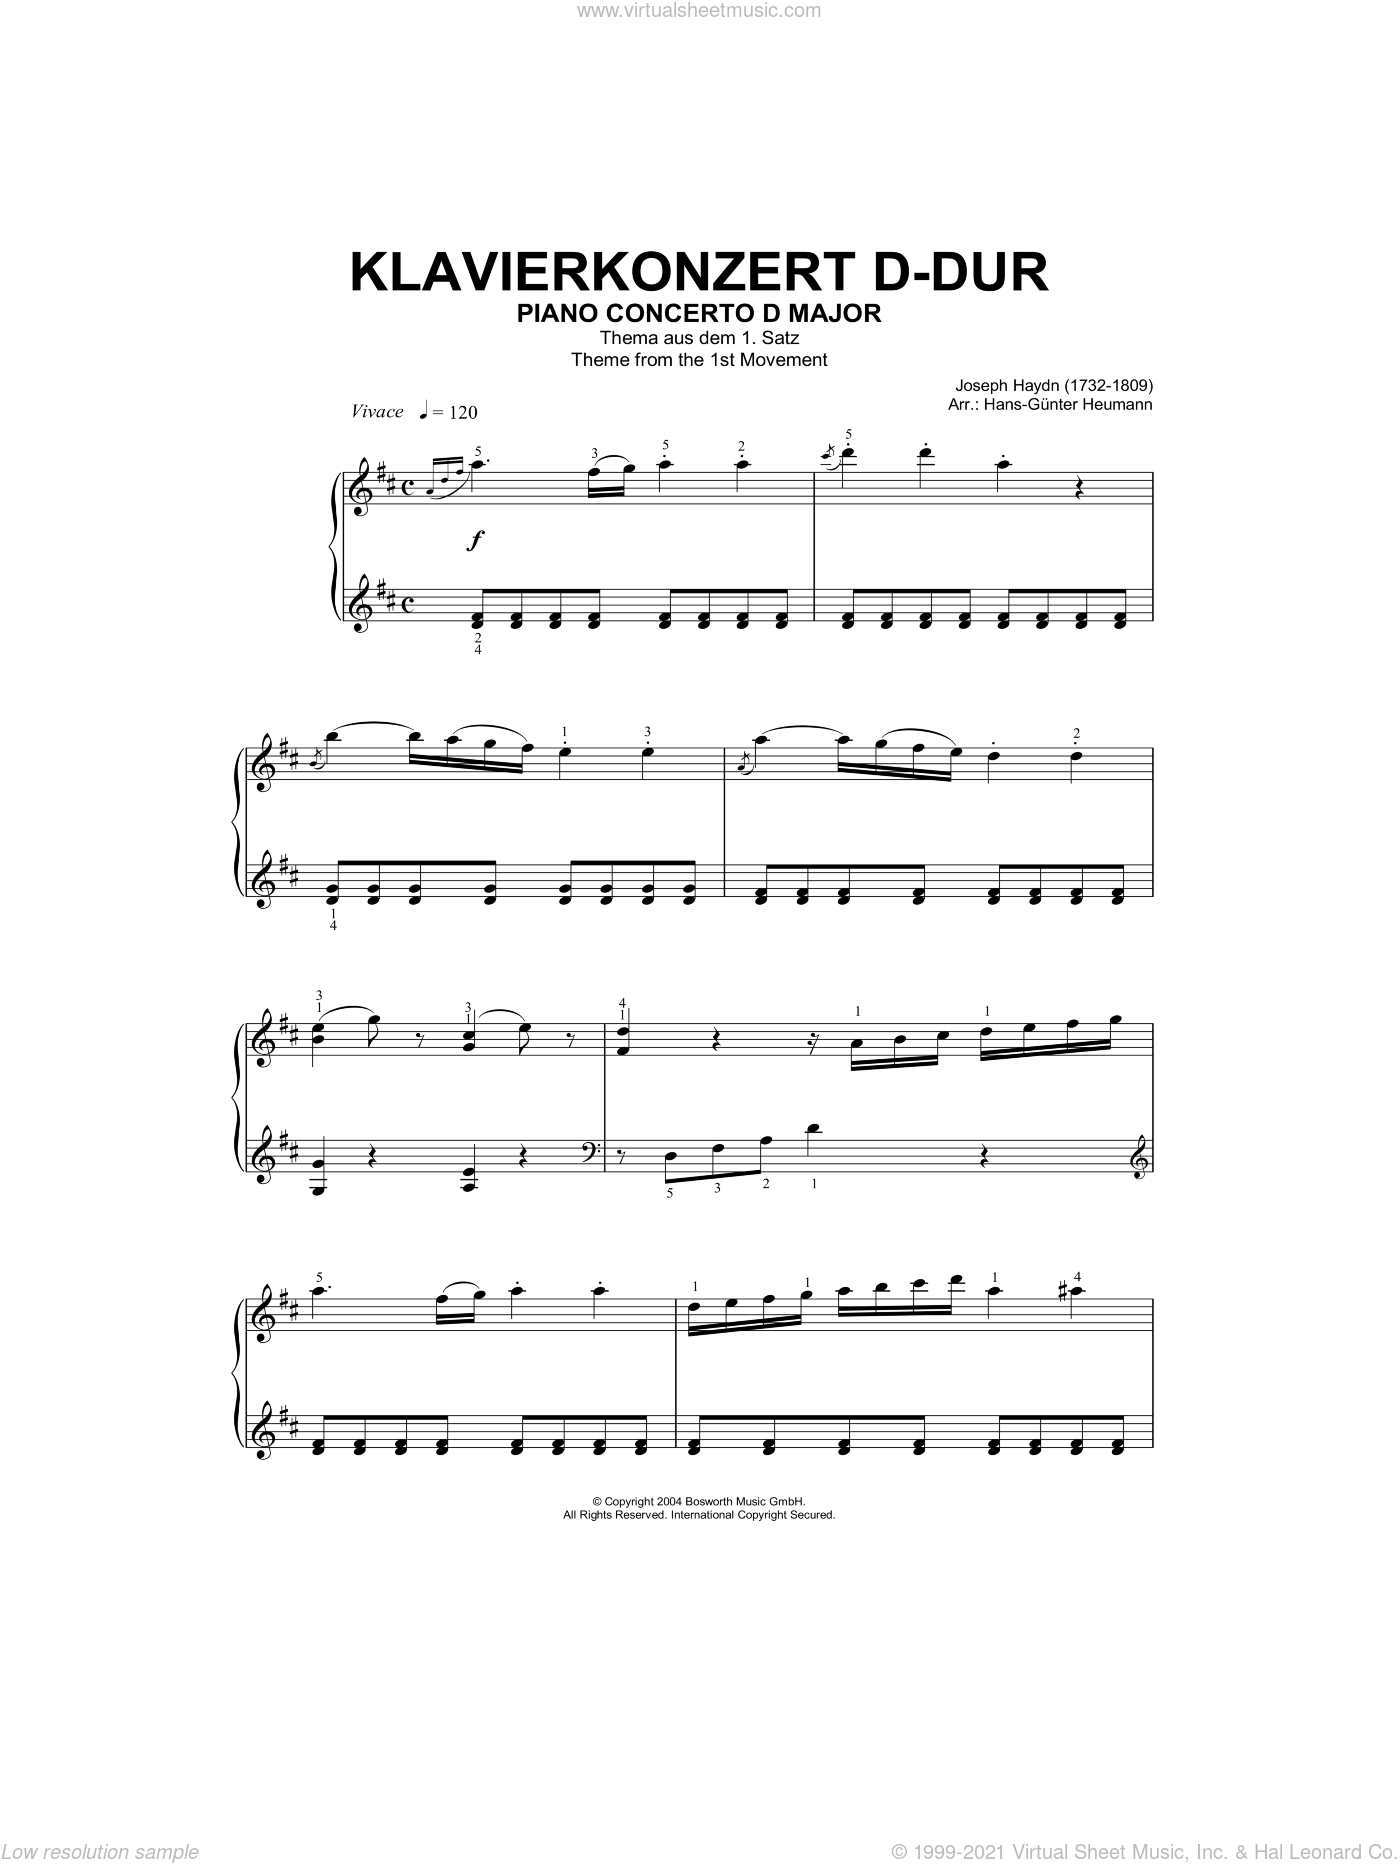 Piano Concerto In D Major, Theme From First Movement sheet music for piano solo by Franz Joseph Haydn and Hans-Gunter Heumann, classical score, intermediate skill level